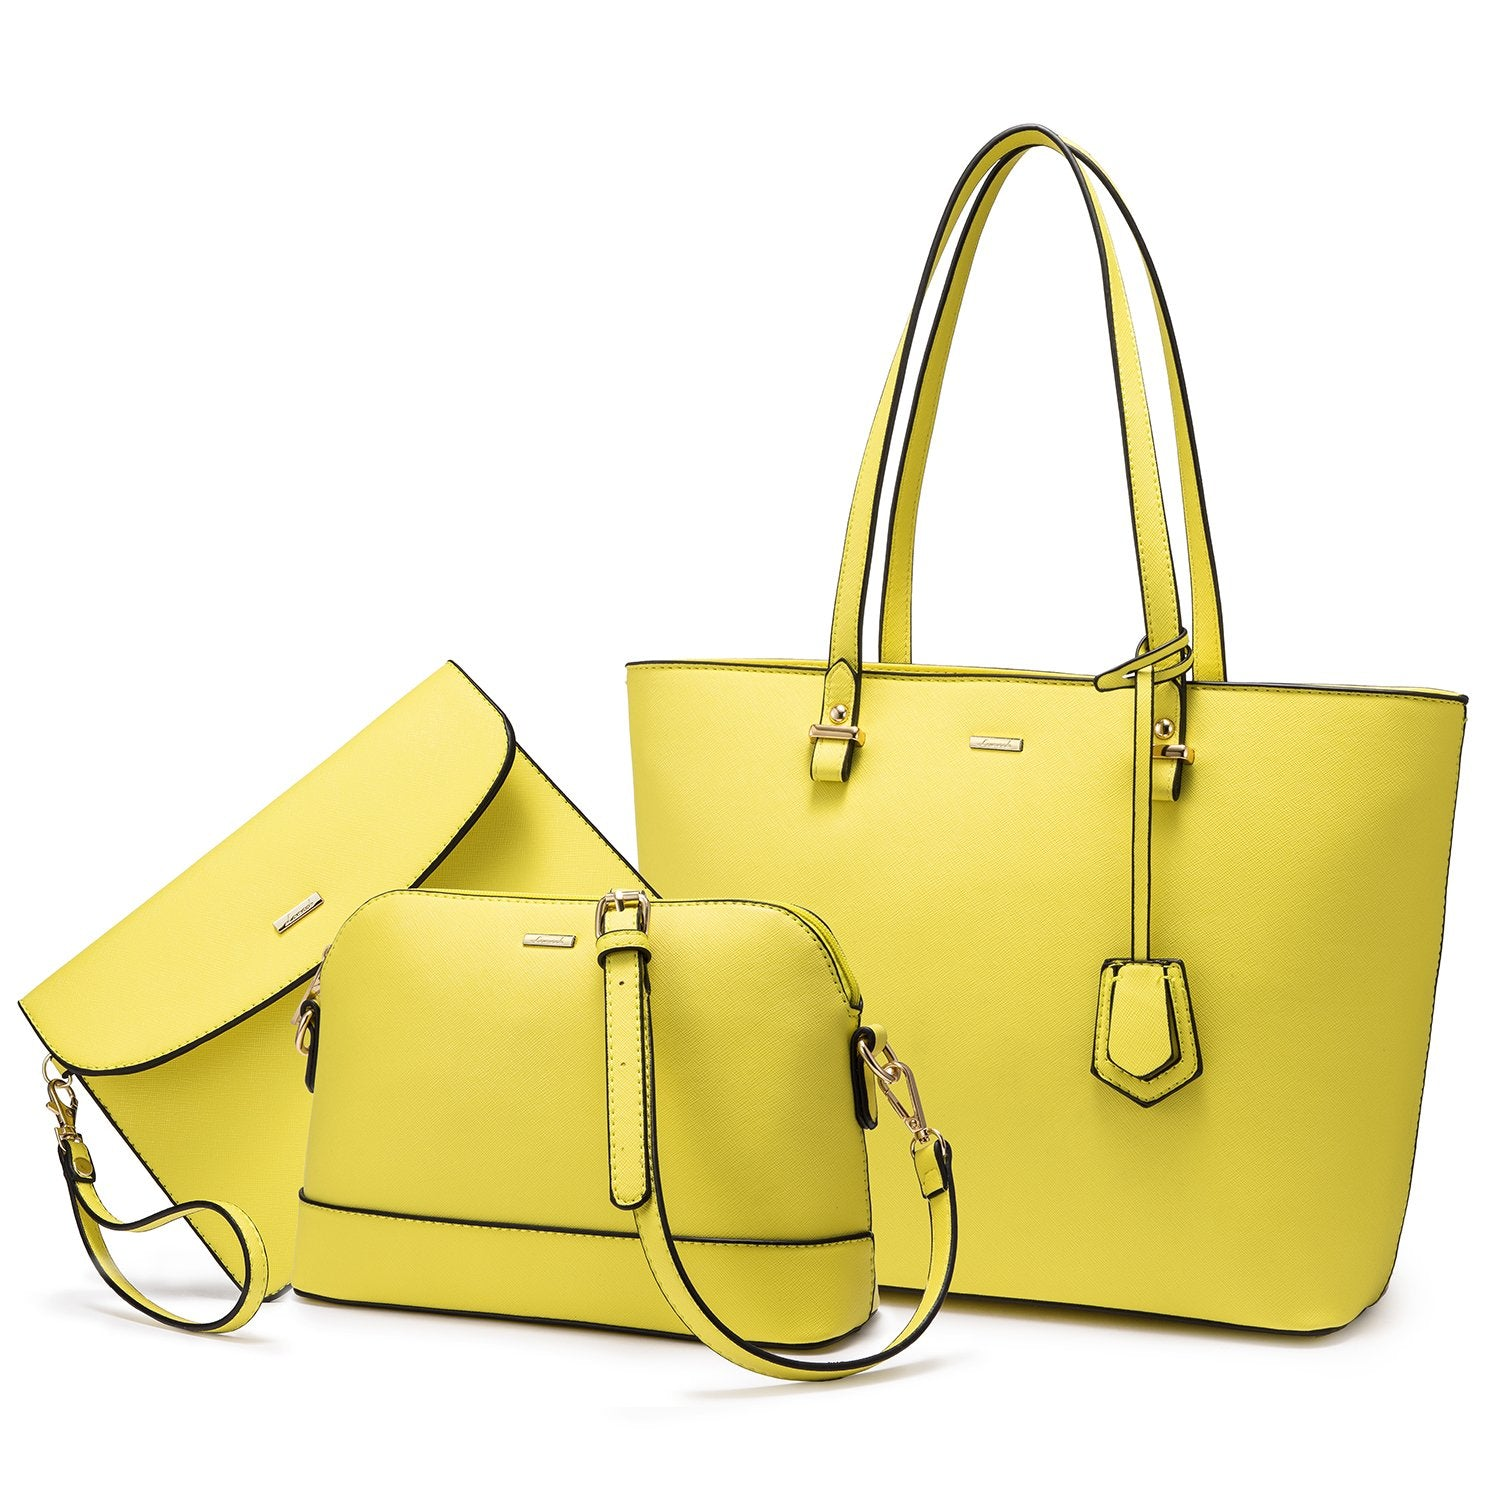 Lovevook-handbag-composite-bag-RHNWB0976-Yellow-positive